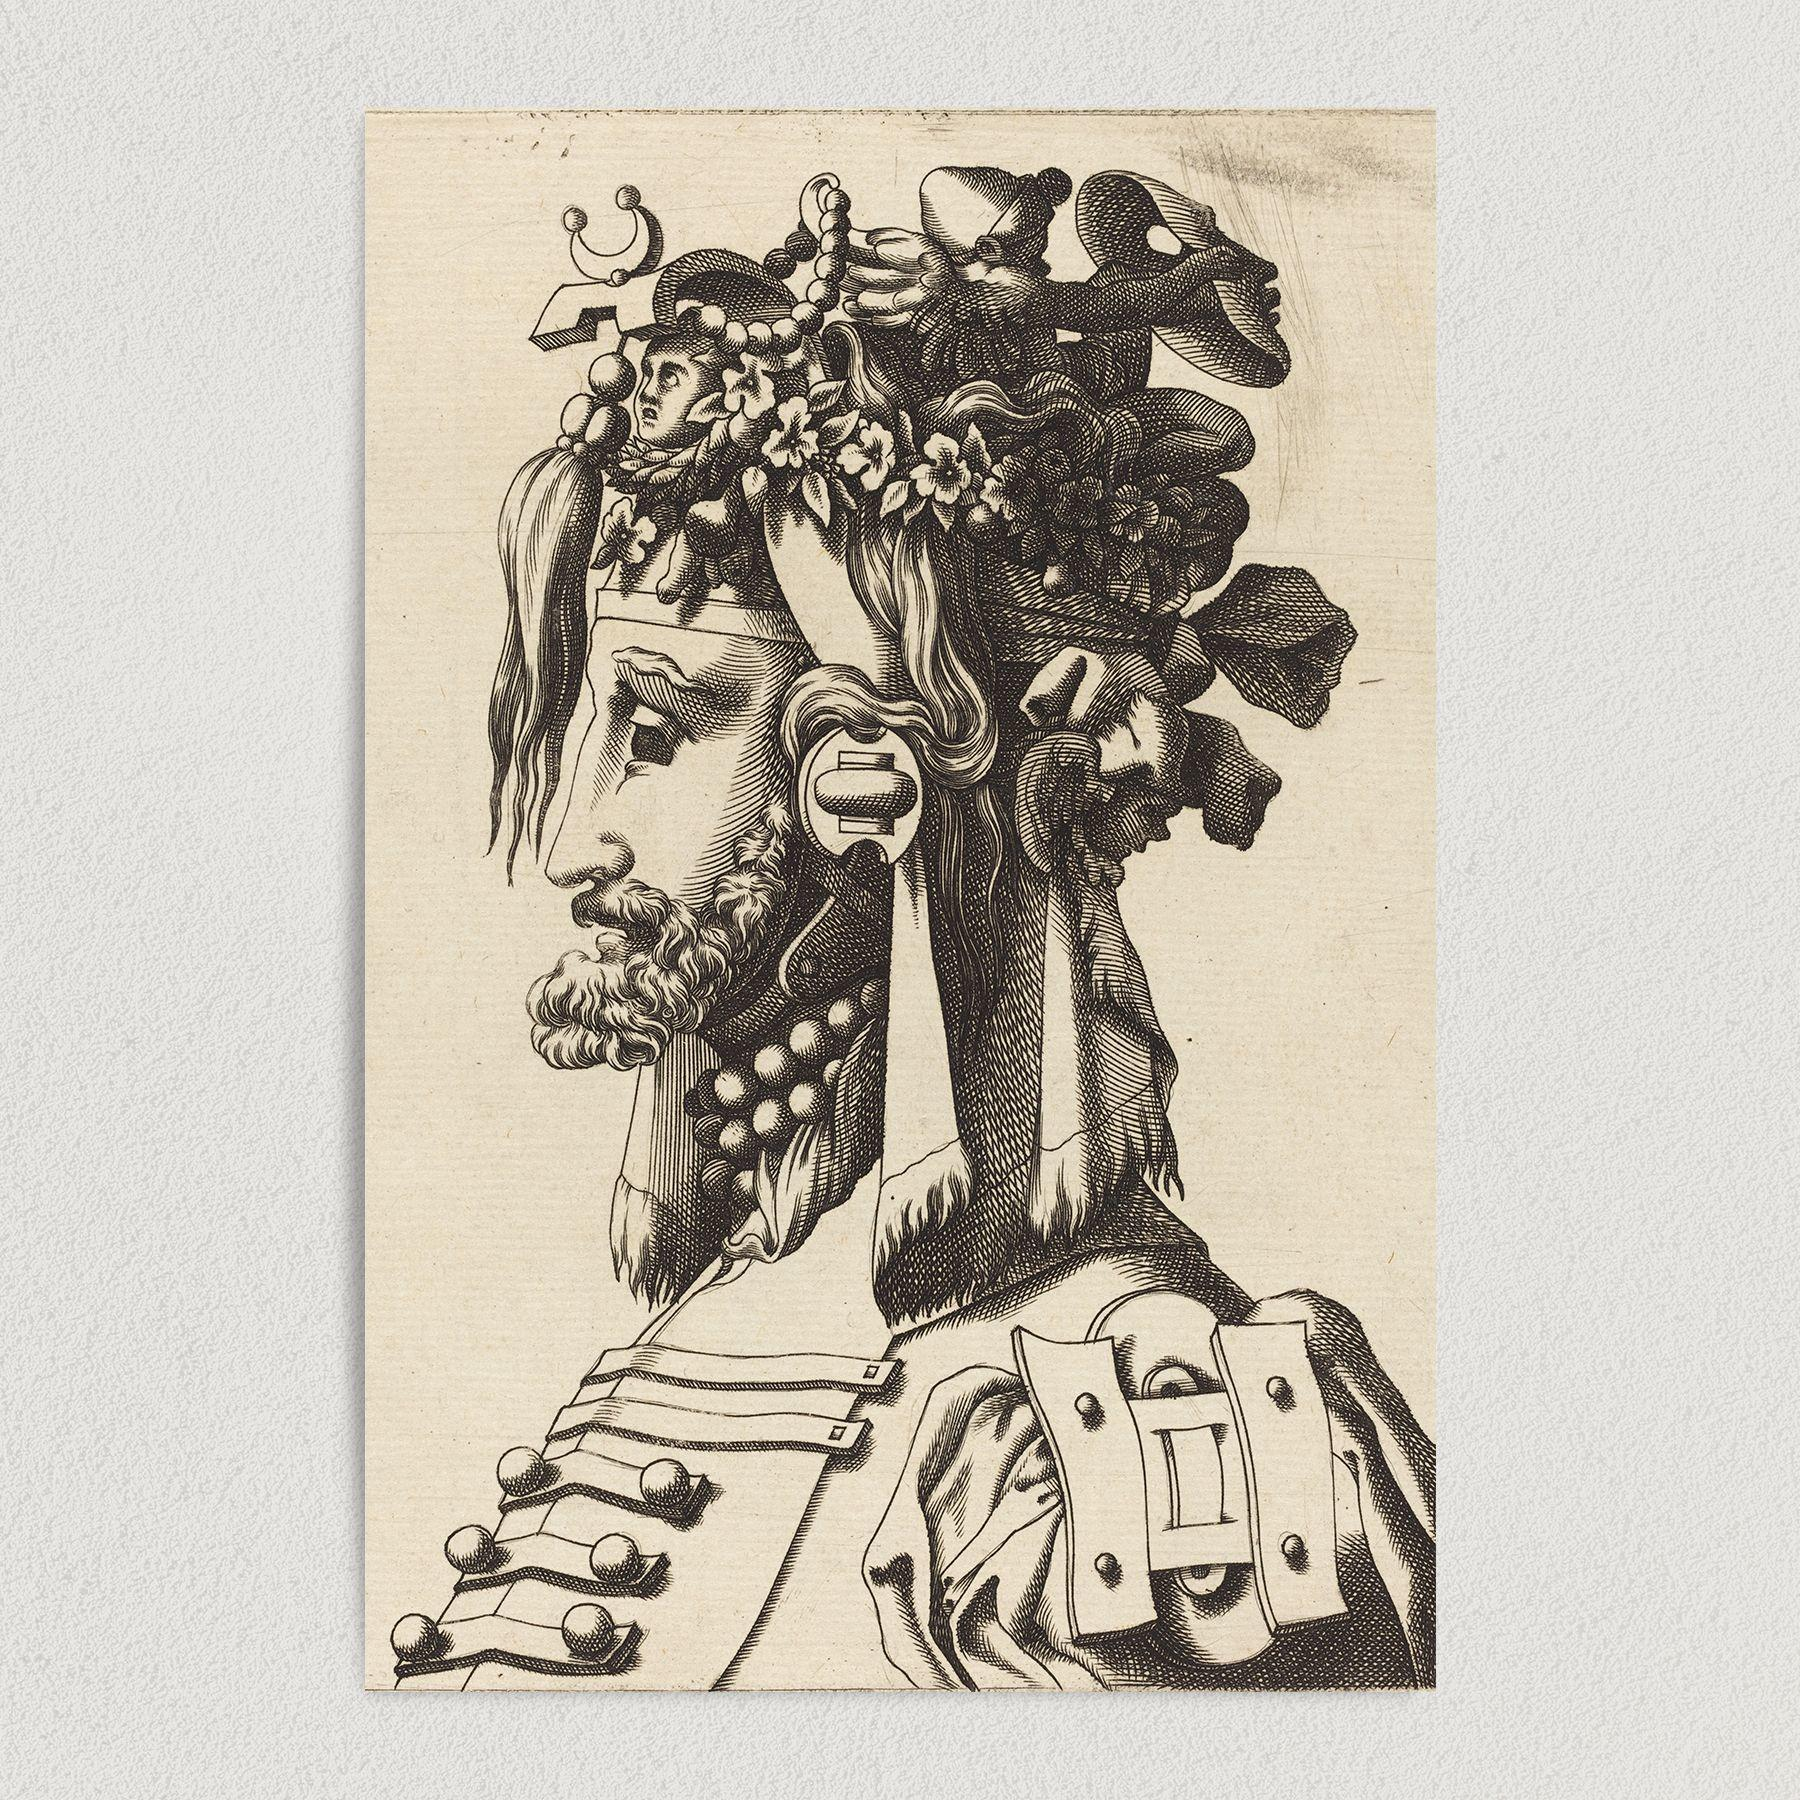 Bust of Man From the 1600s Art Print Poster EA1000